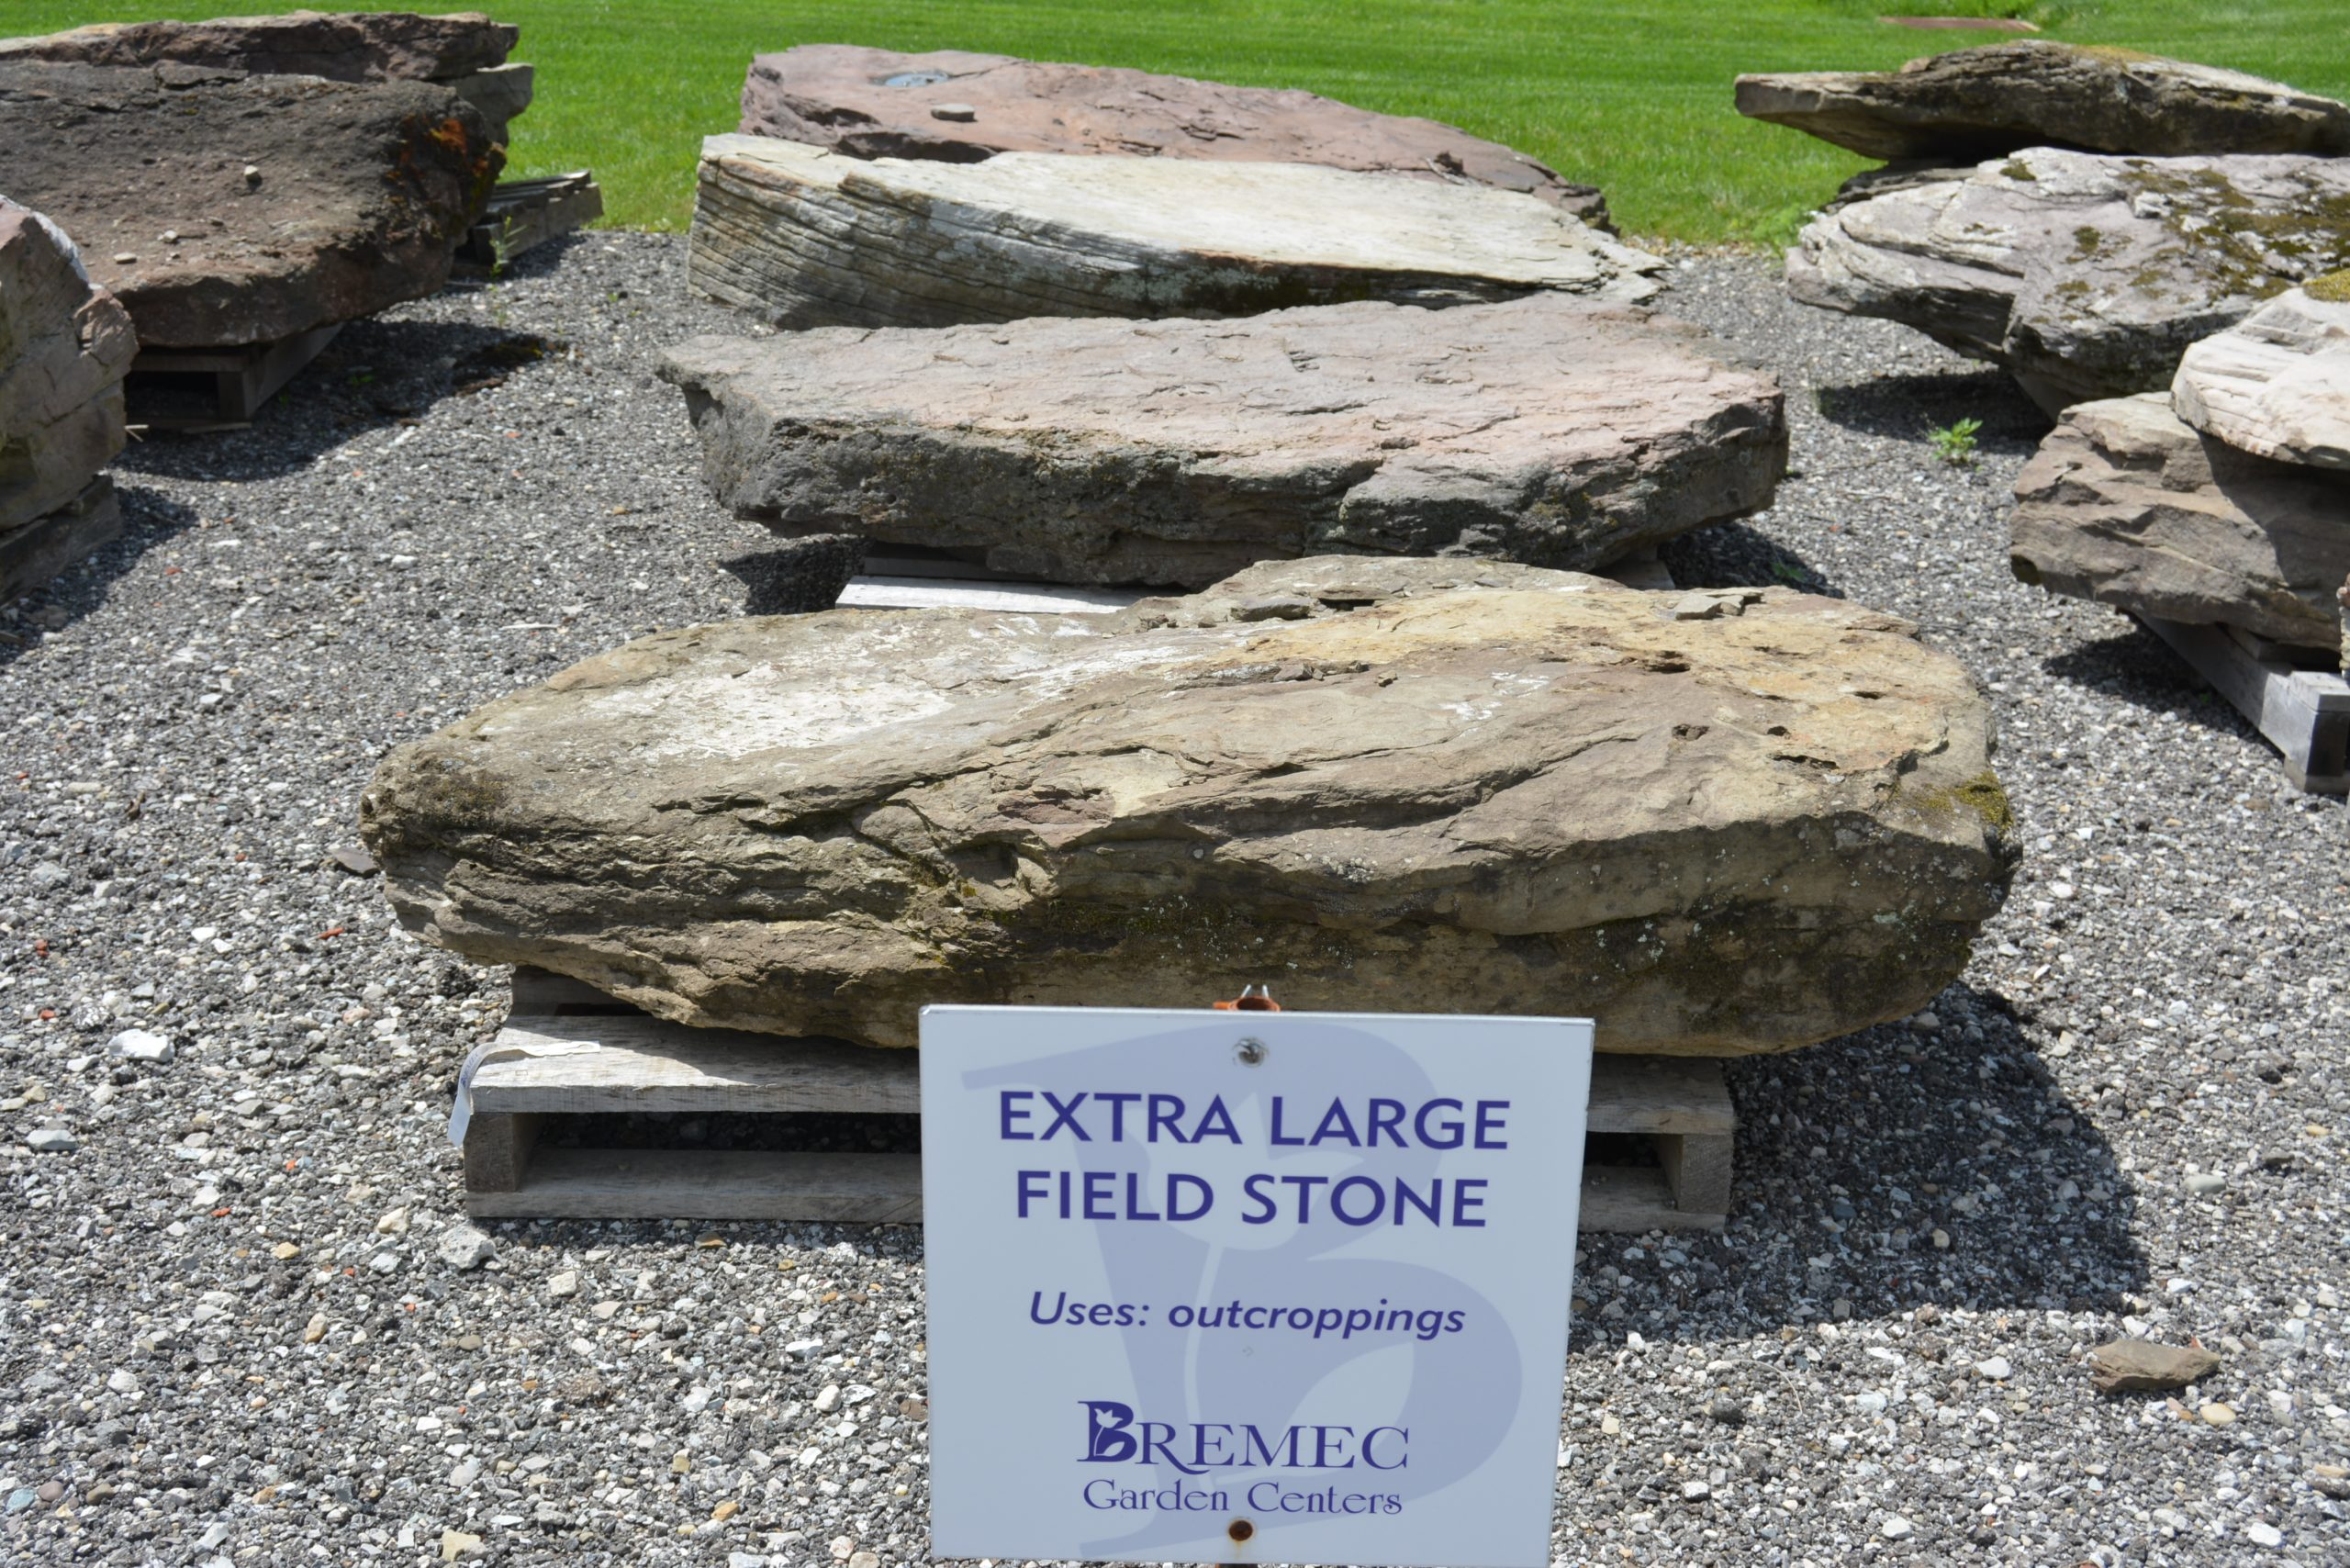 Extra Large Field Stone